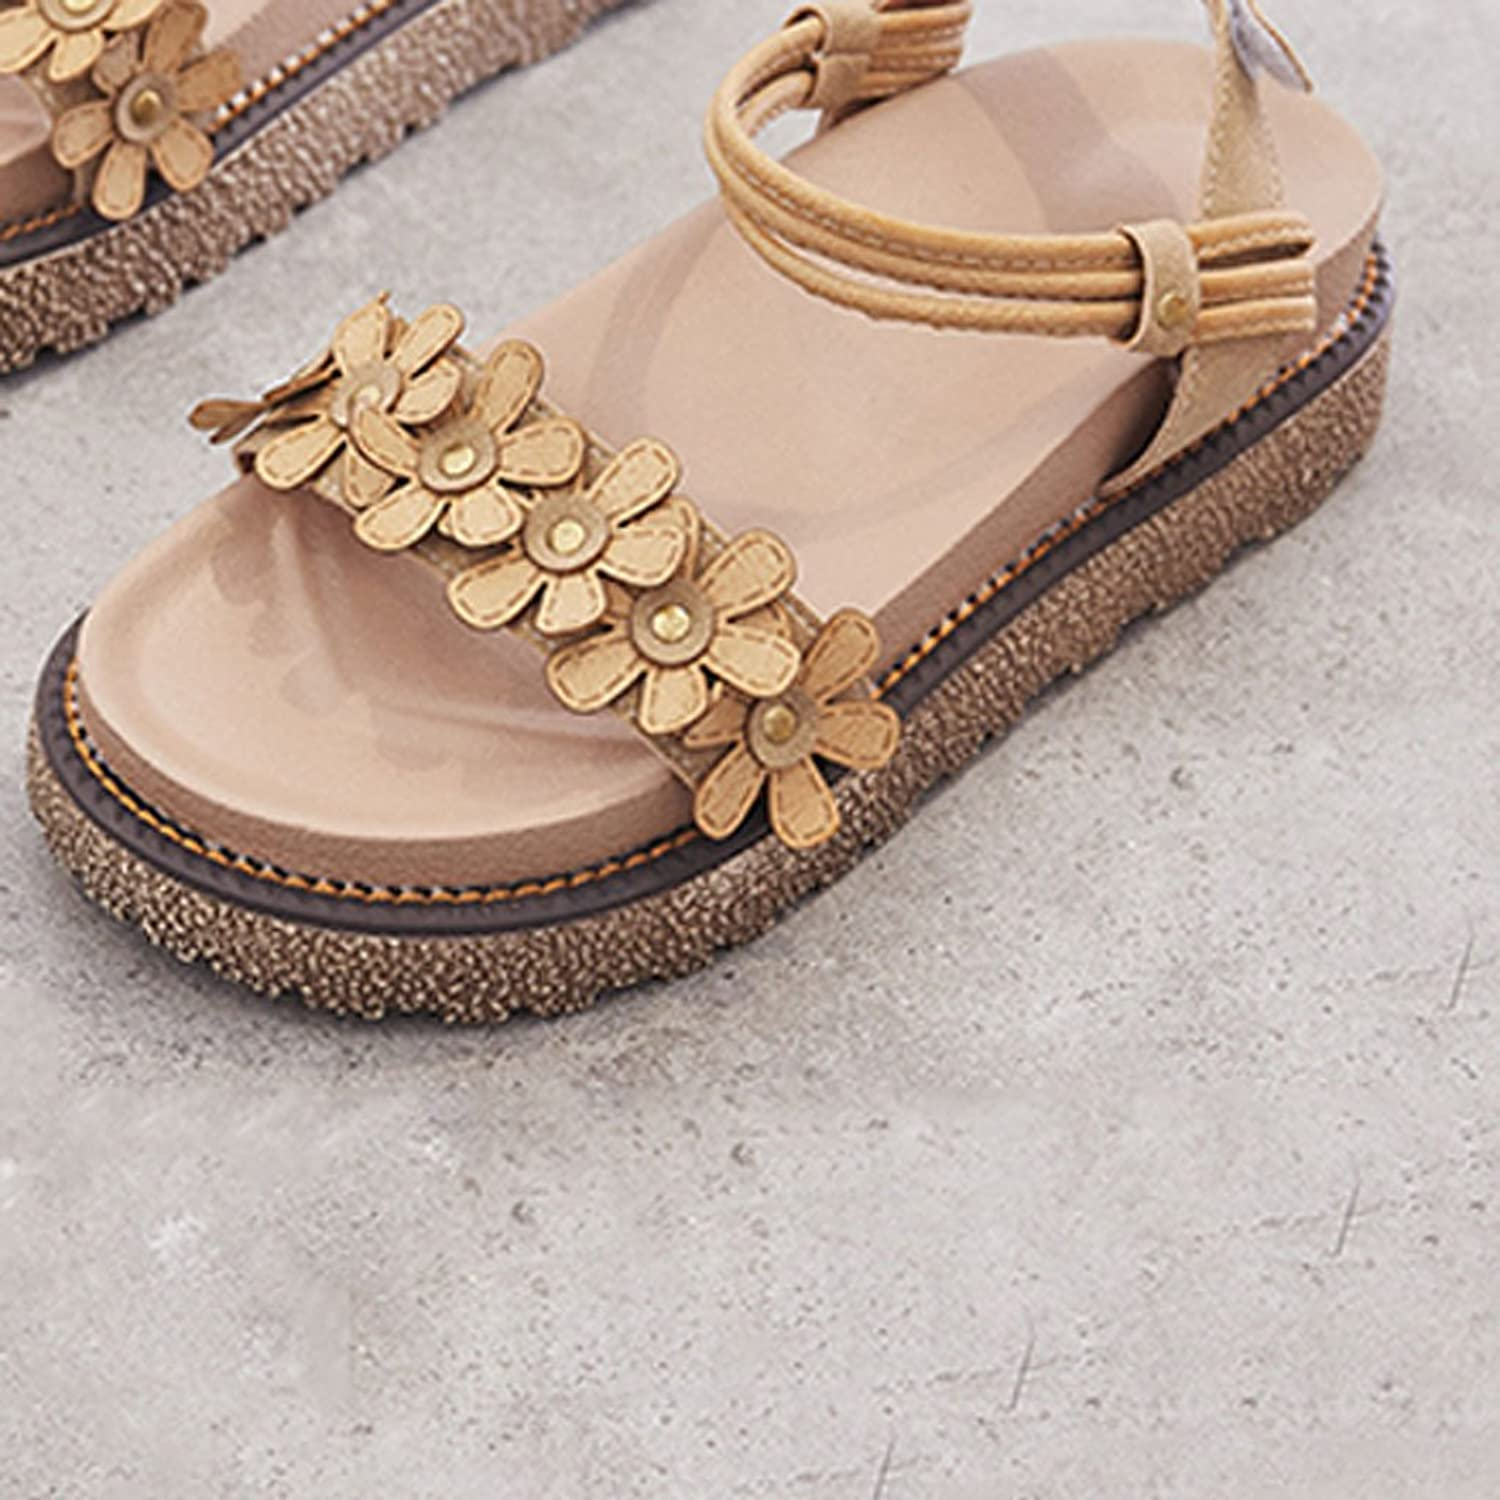 LIUXUEPING Muffin Thick-Soled Roman Female Sandals Summer New Korean Version of The Wild Students Flat Retro shoes (color   Brown, Size   40)